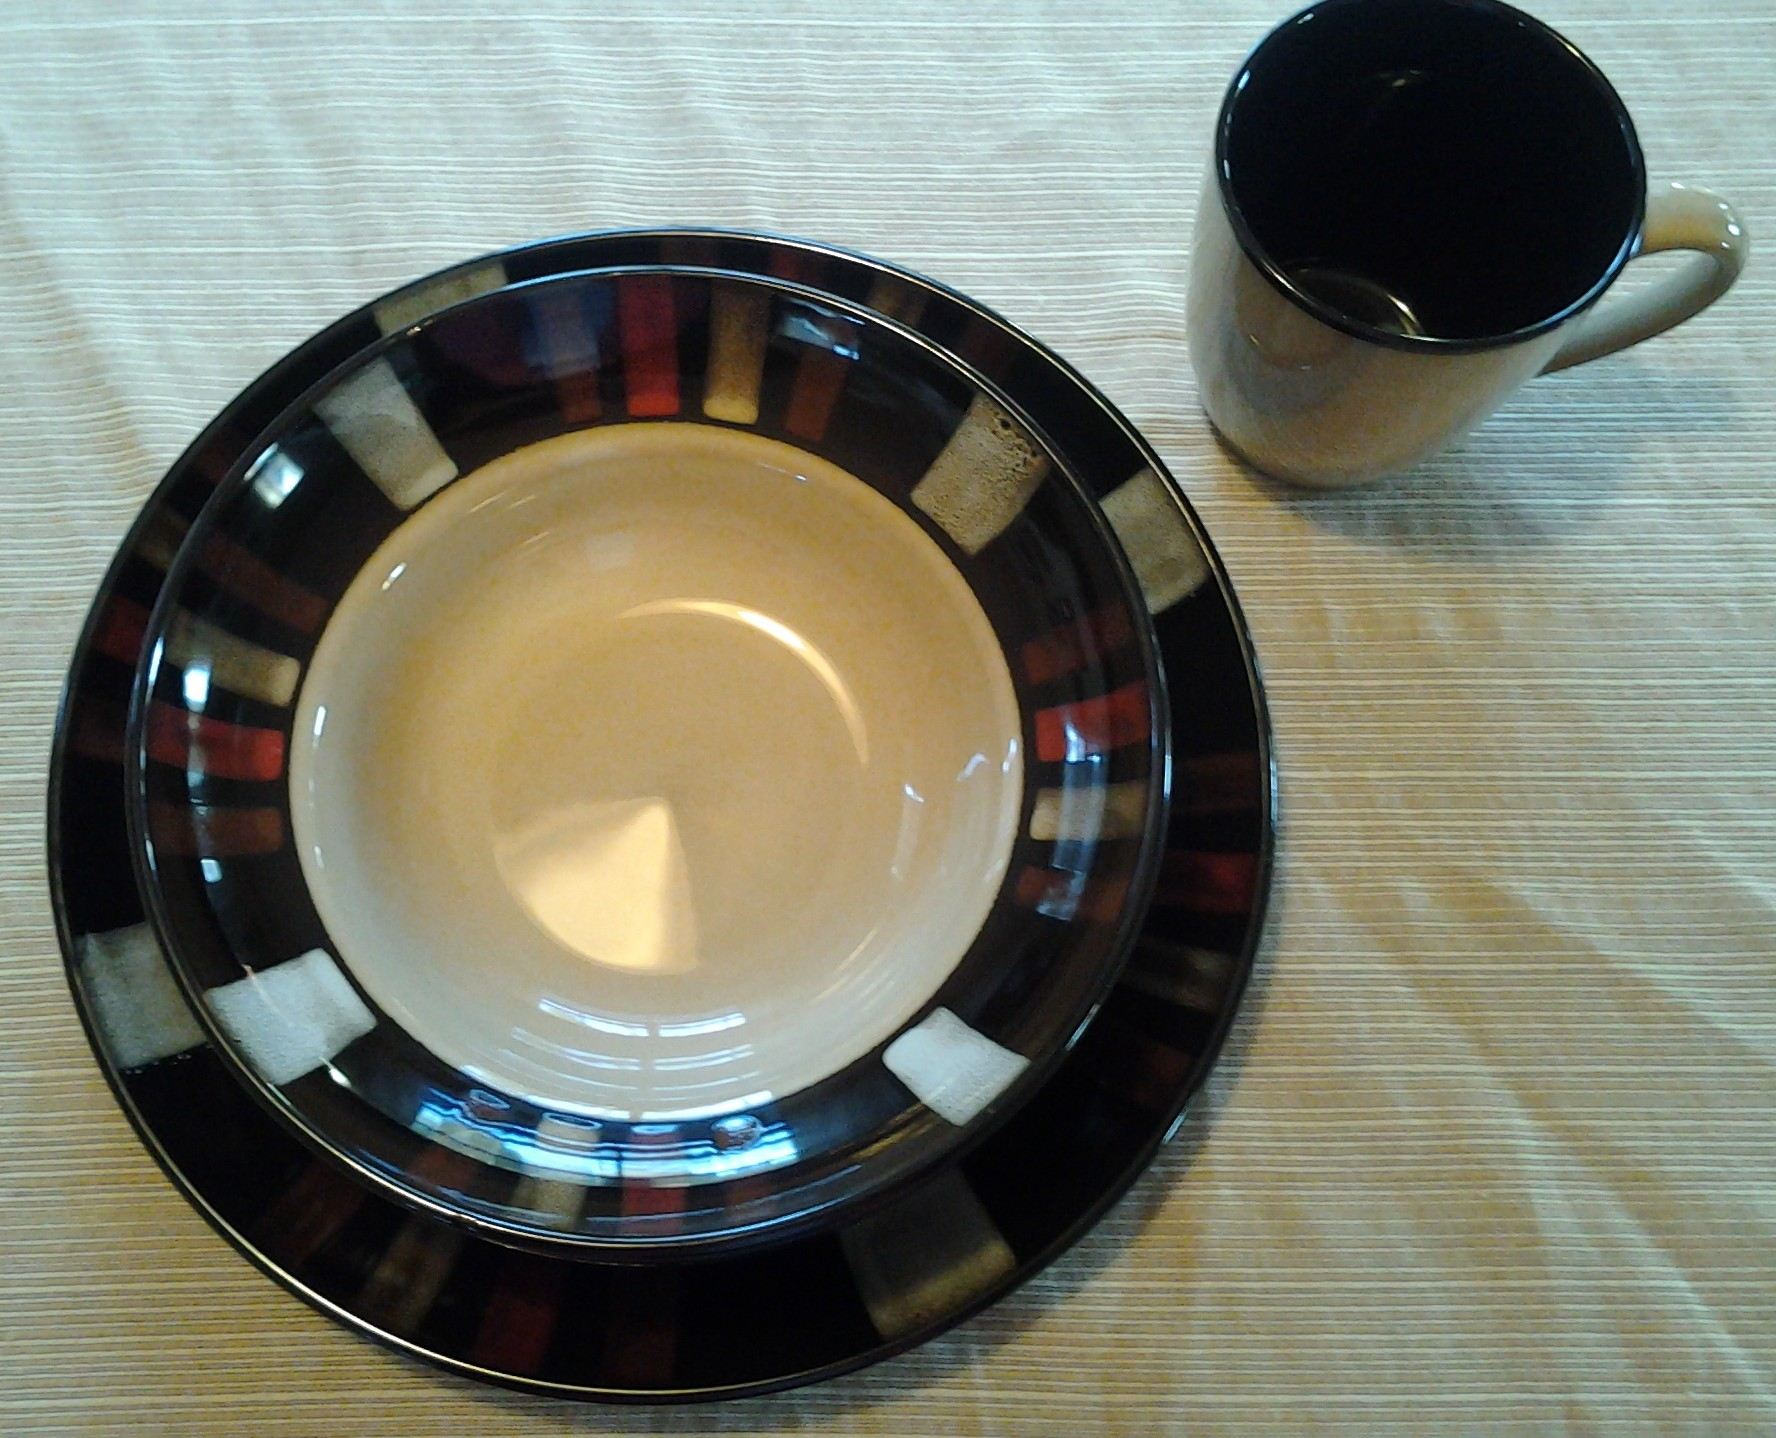 Pfaltzgraff ... & Pfaltzgraff Tahoe Dinnerware Review | Emily Reviews